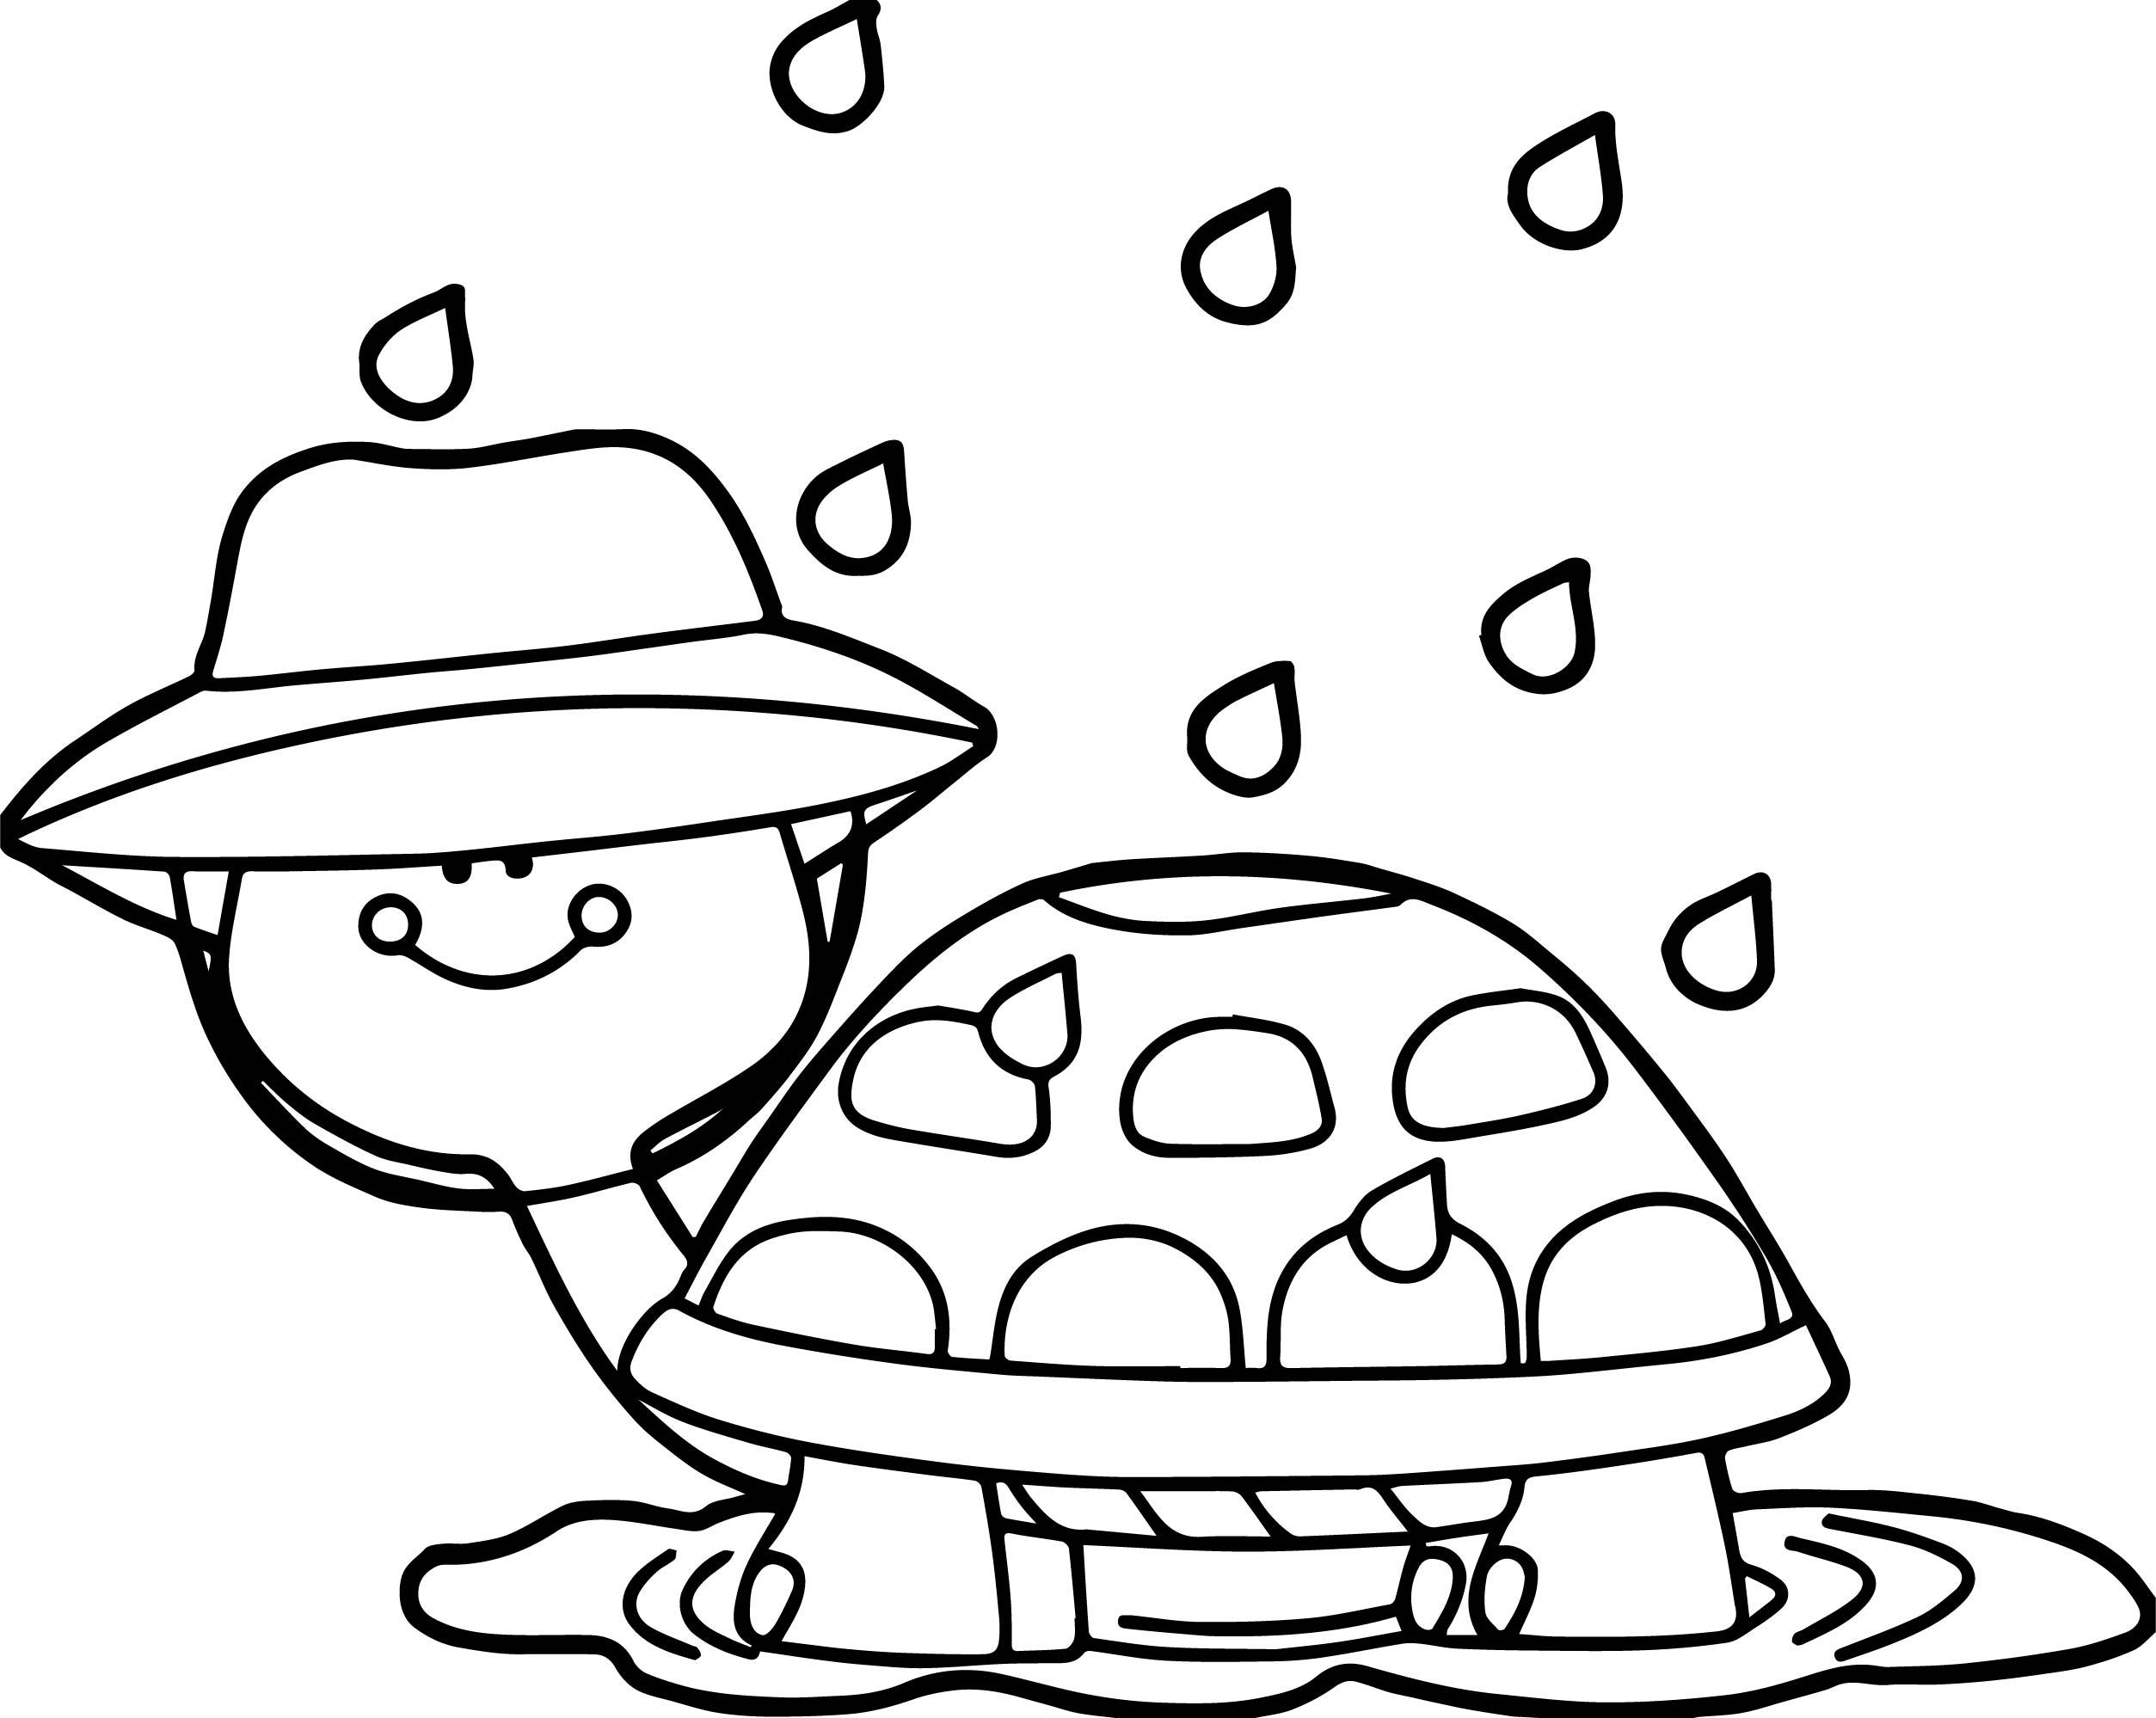 april shower turtle coloring page wecoloringpage